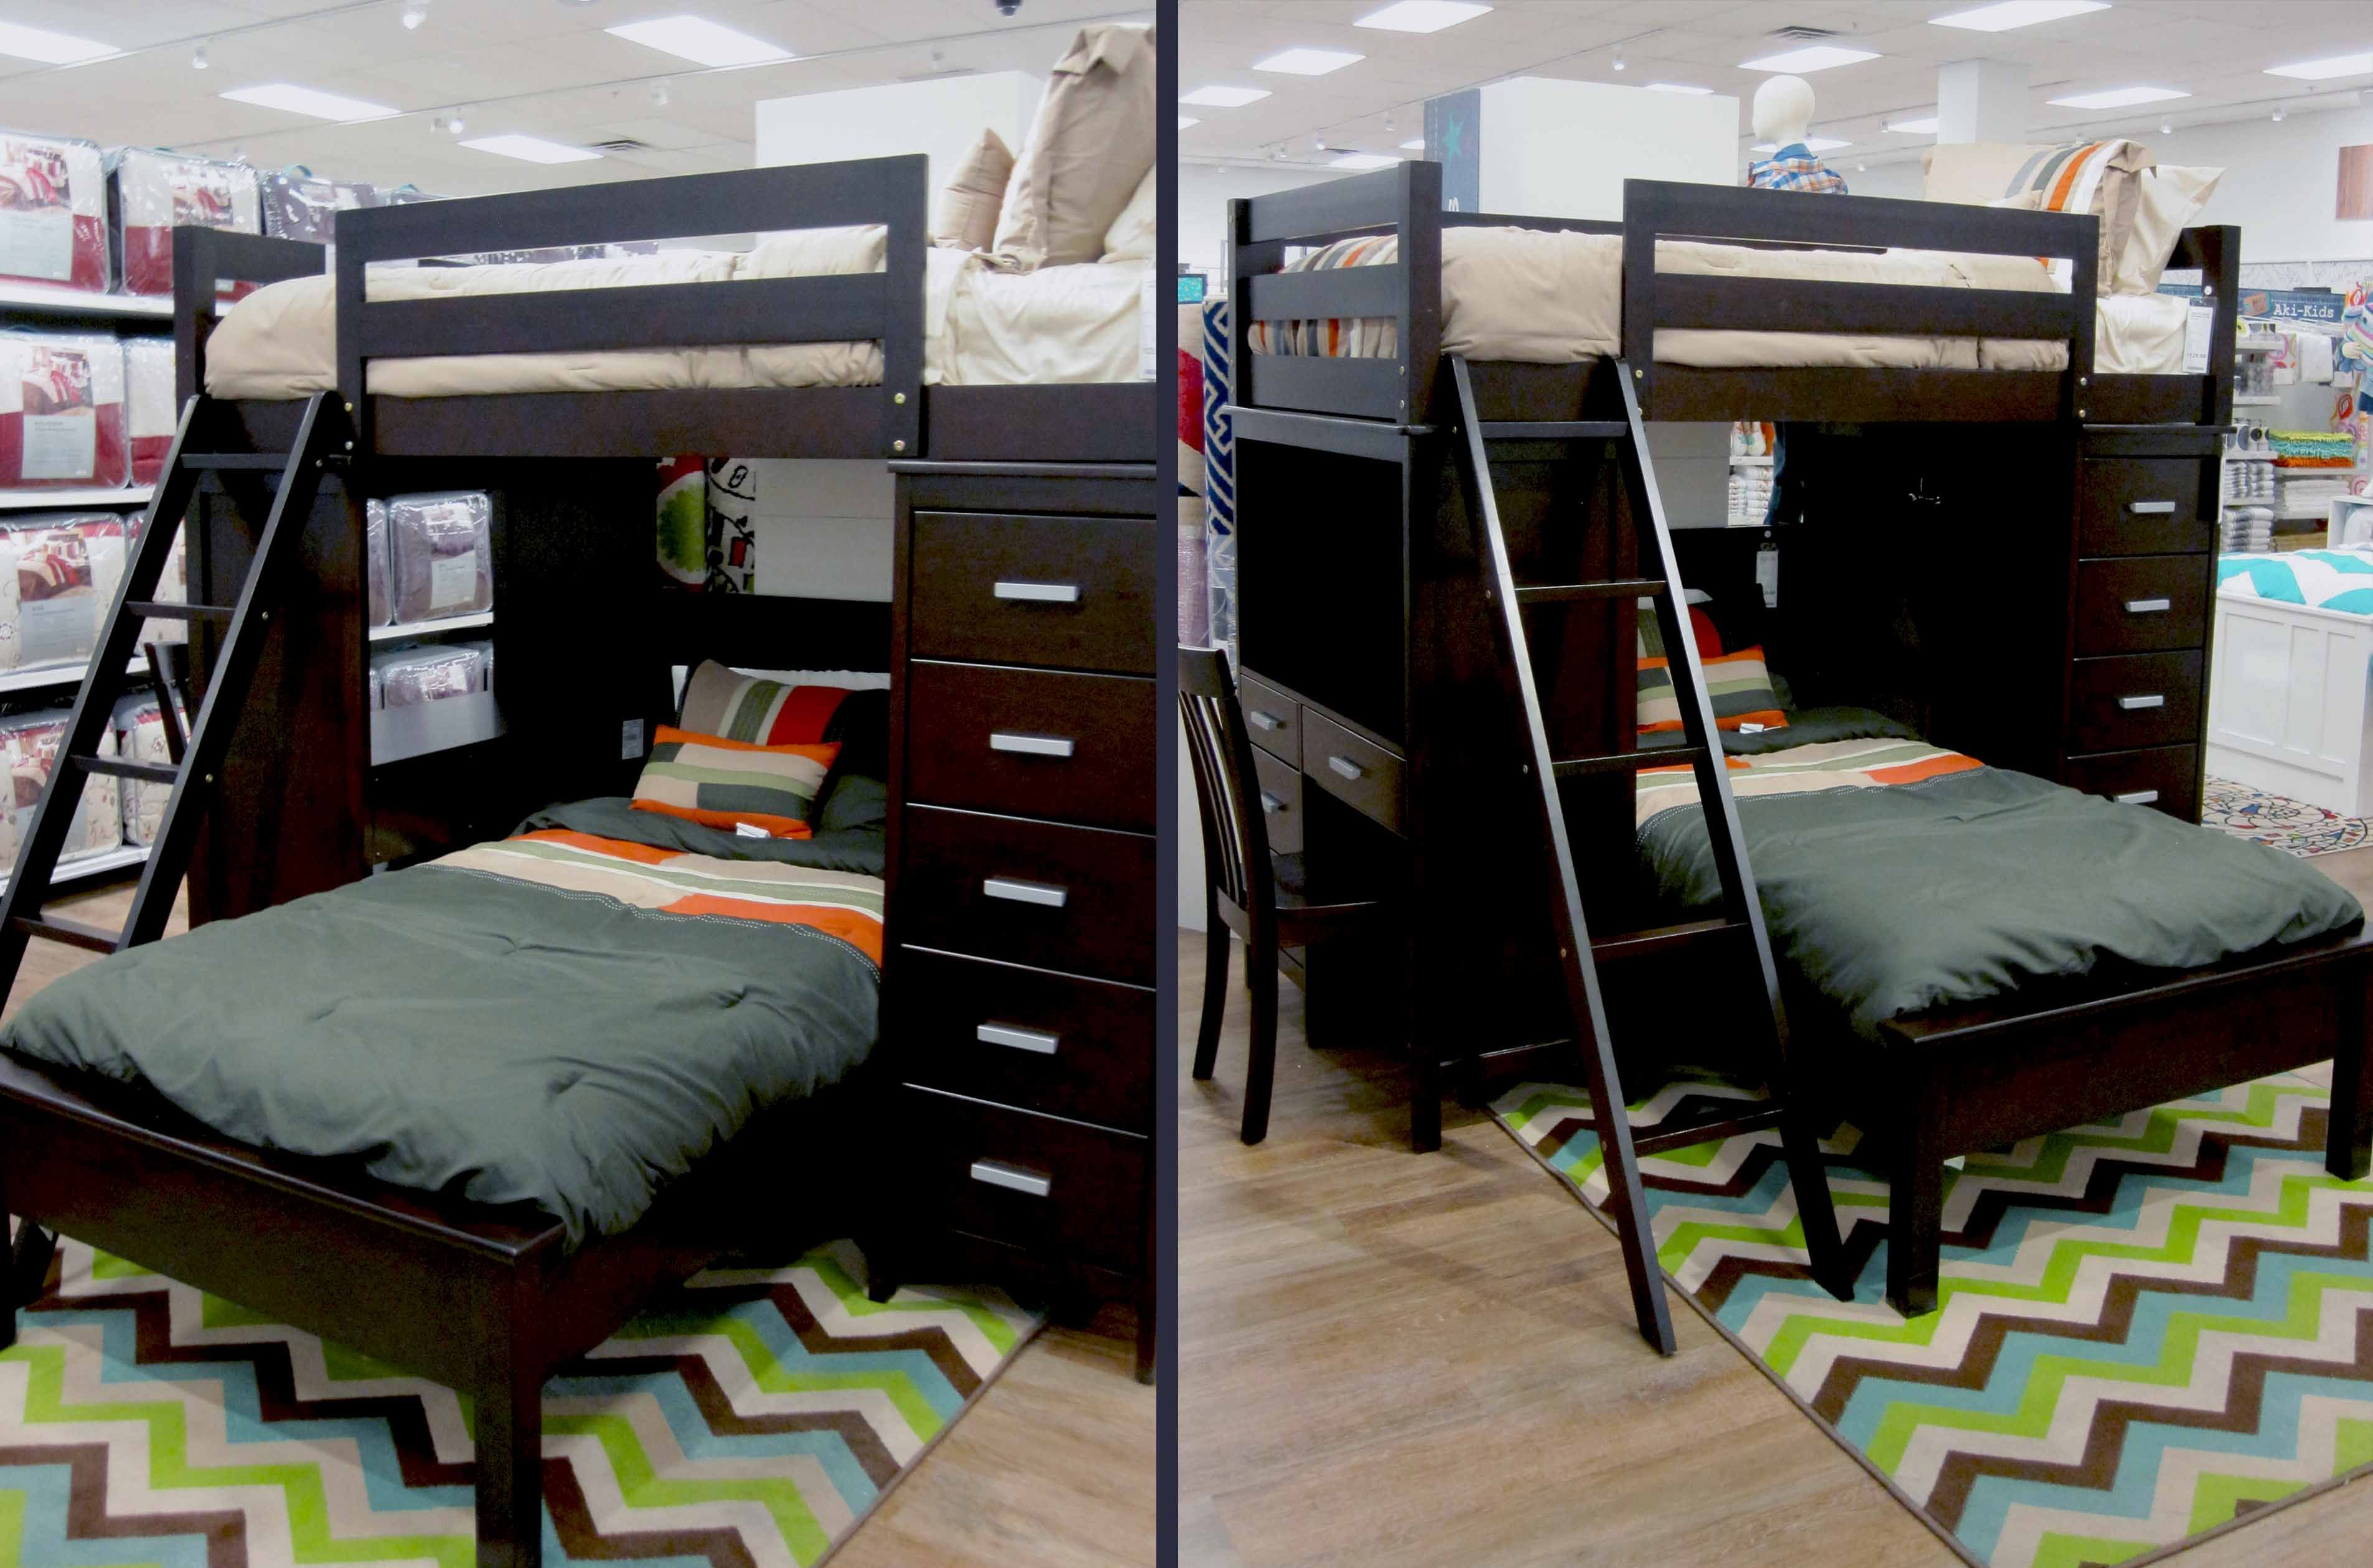 Loft bed ideas dorm  Awesome bunk bed great use of space for Kids and teens Perfect for